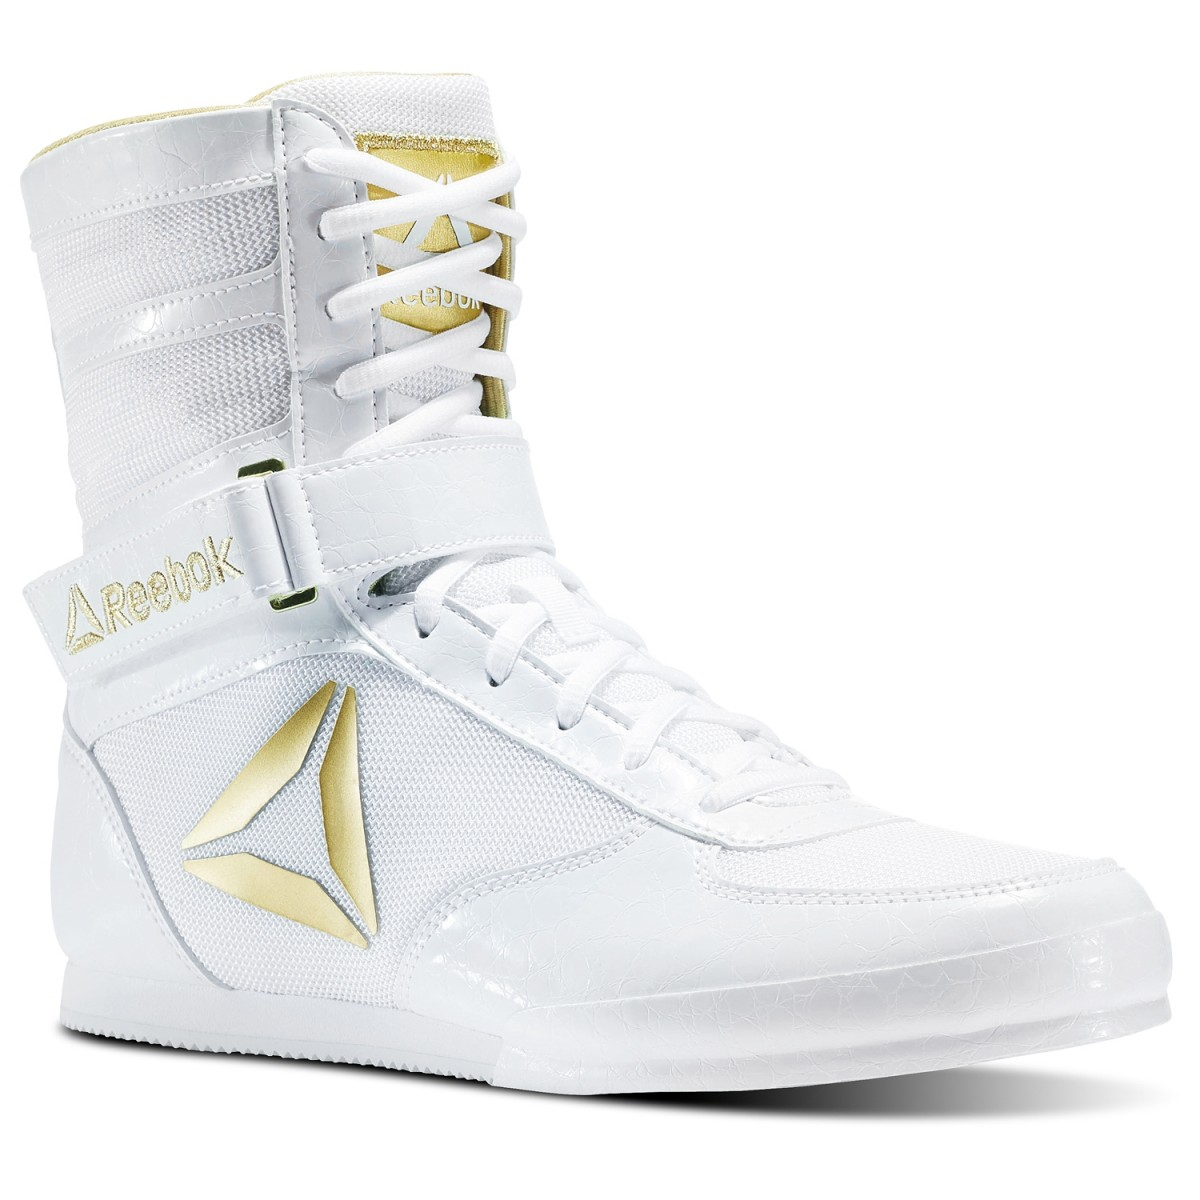 All White Boxing Shoes